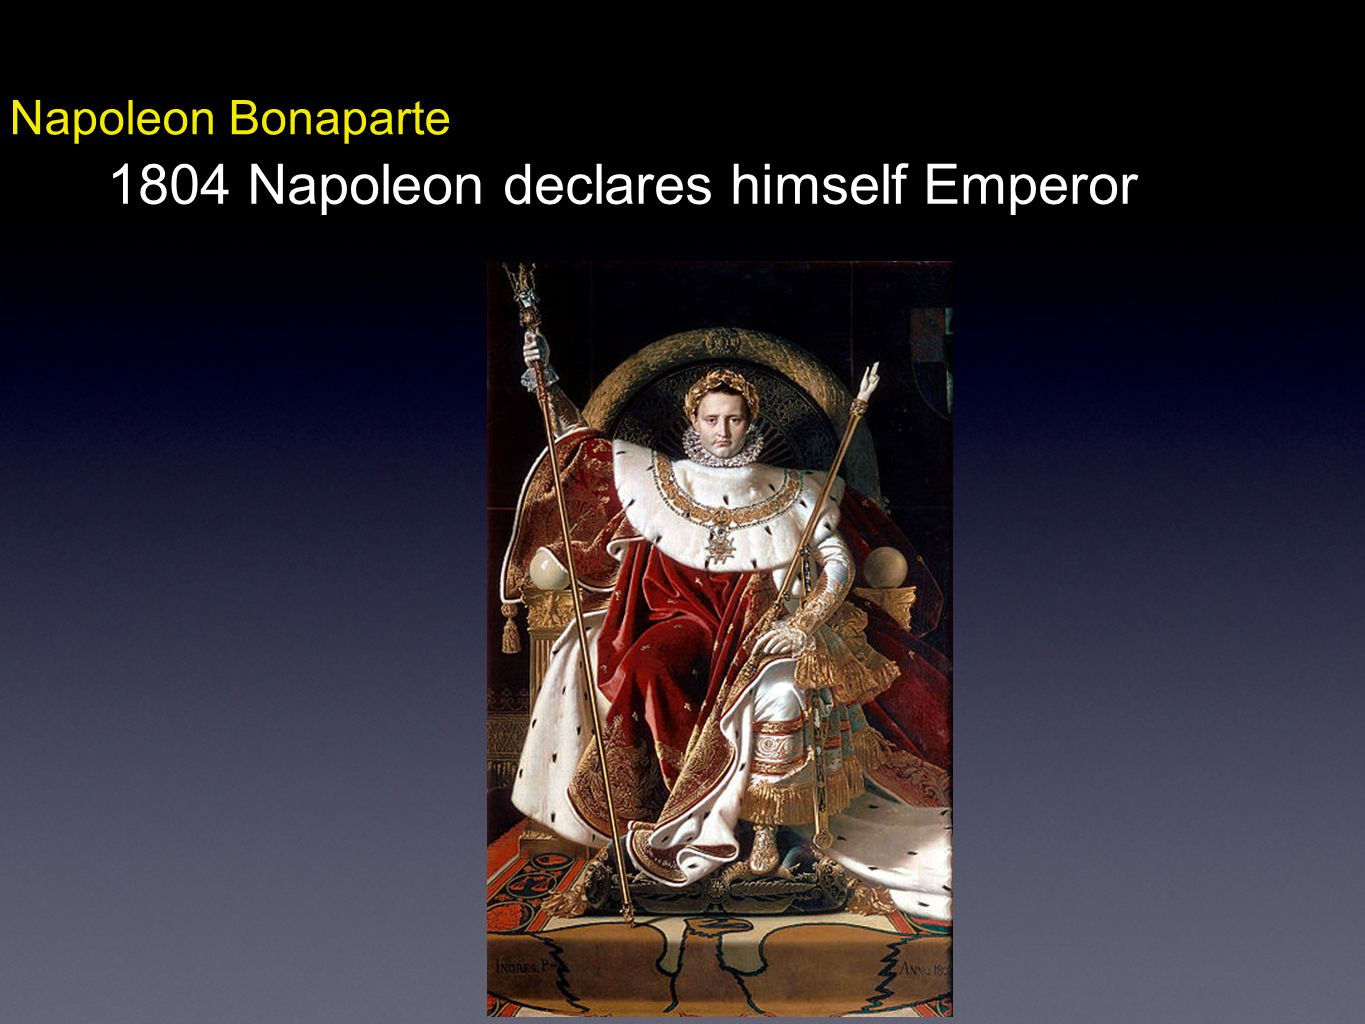 1804 Napoleon declares himself Emperor